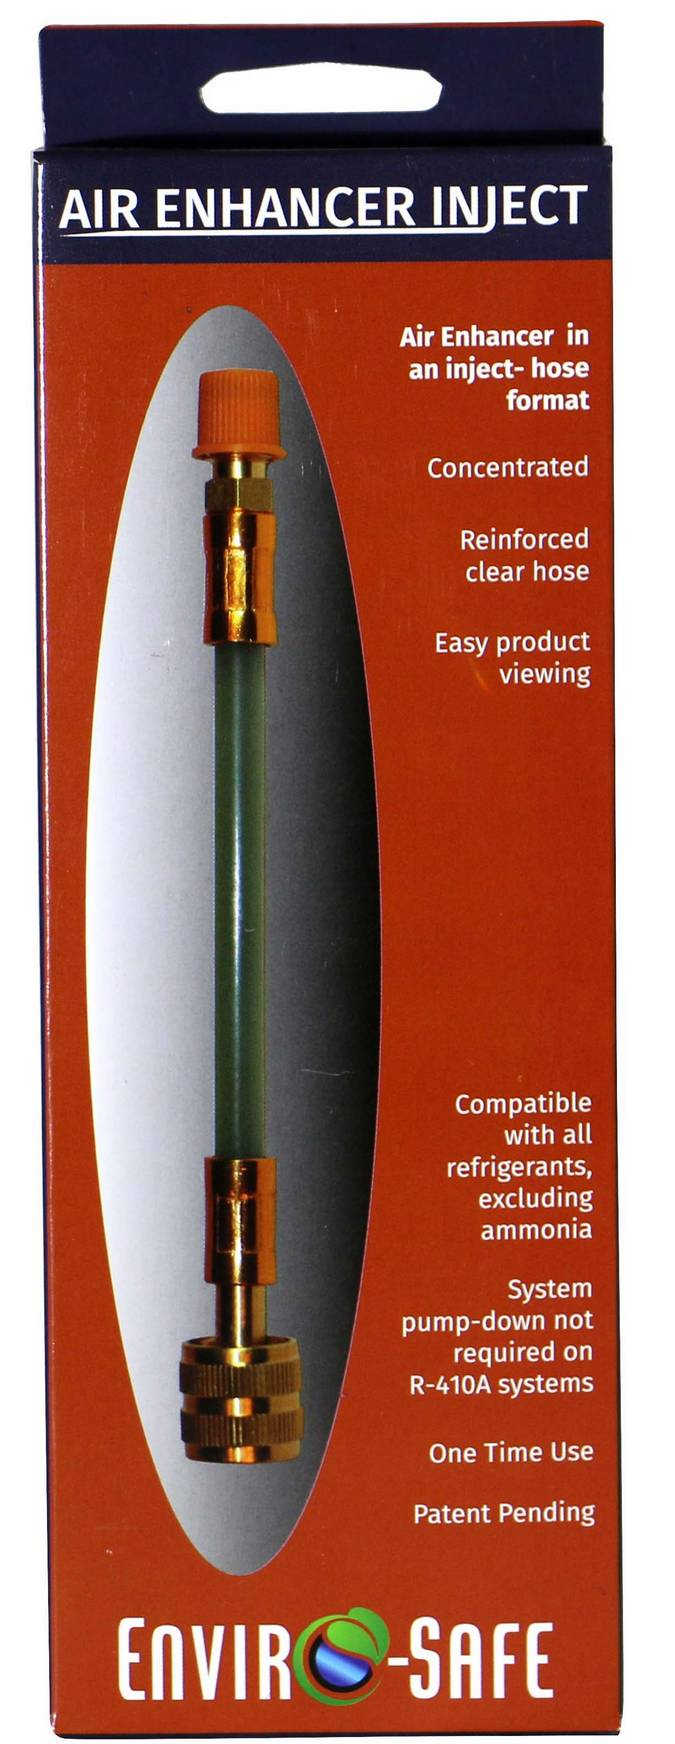 Envirosafe Air Enhancer Inject Photo - Click to Enlarge